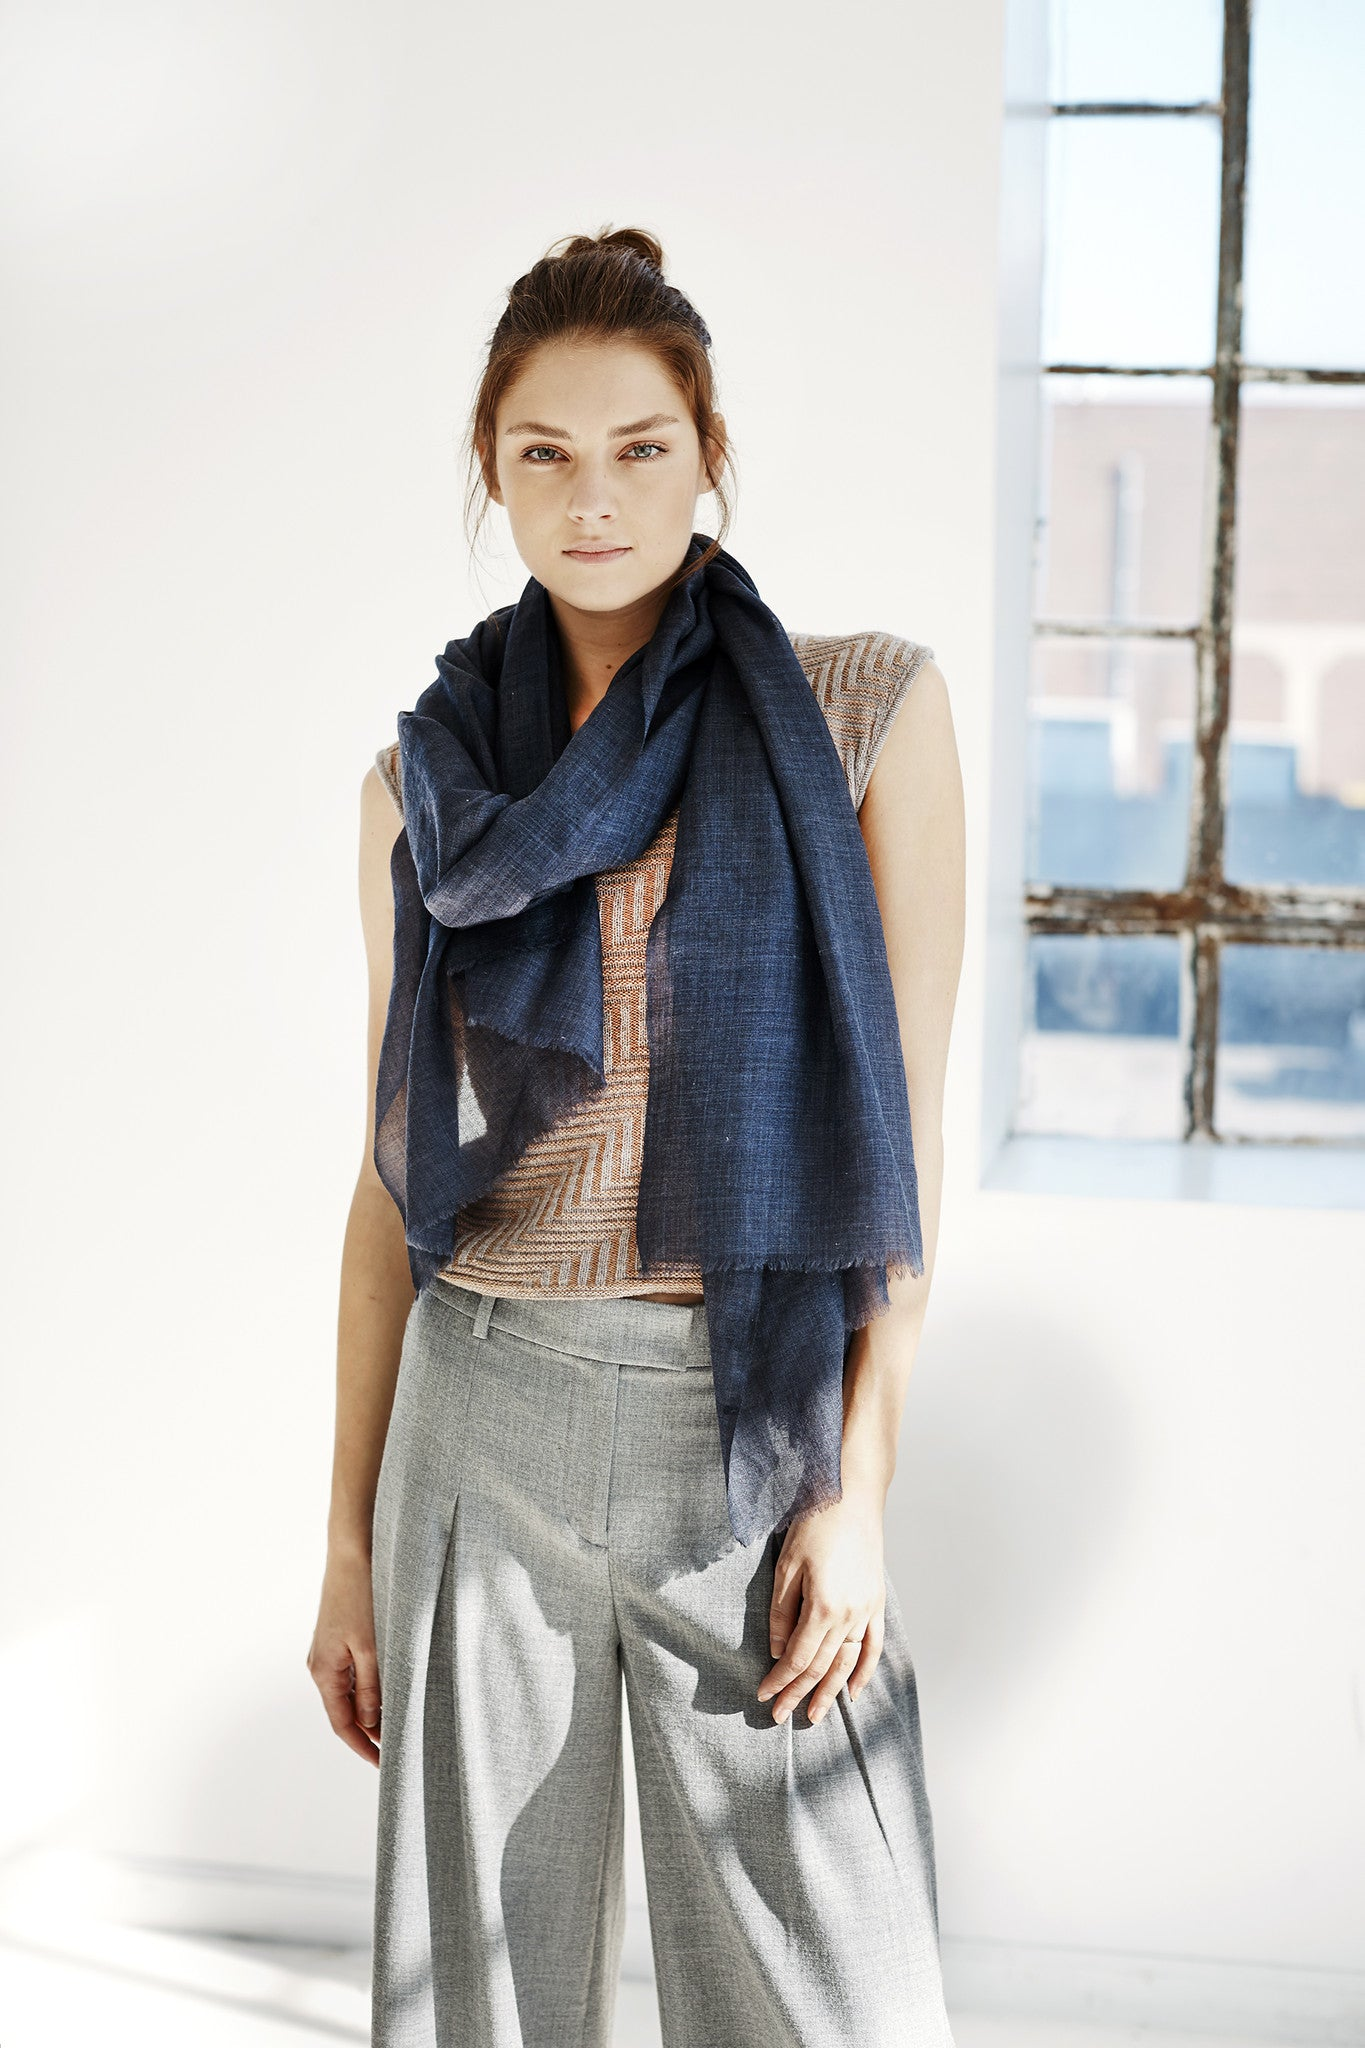 SKY Scarf - Steel Gray Heather